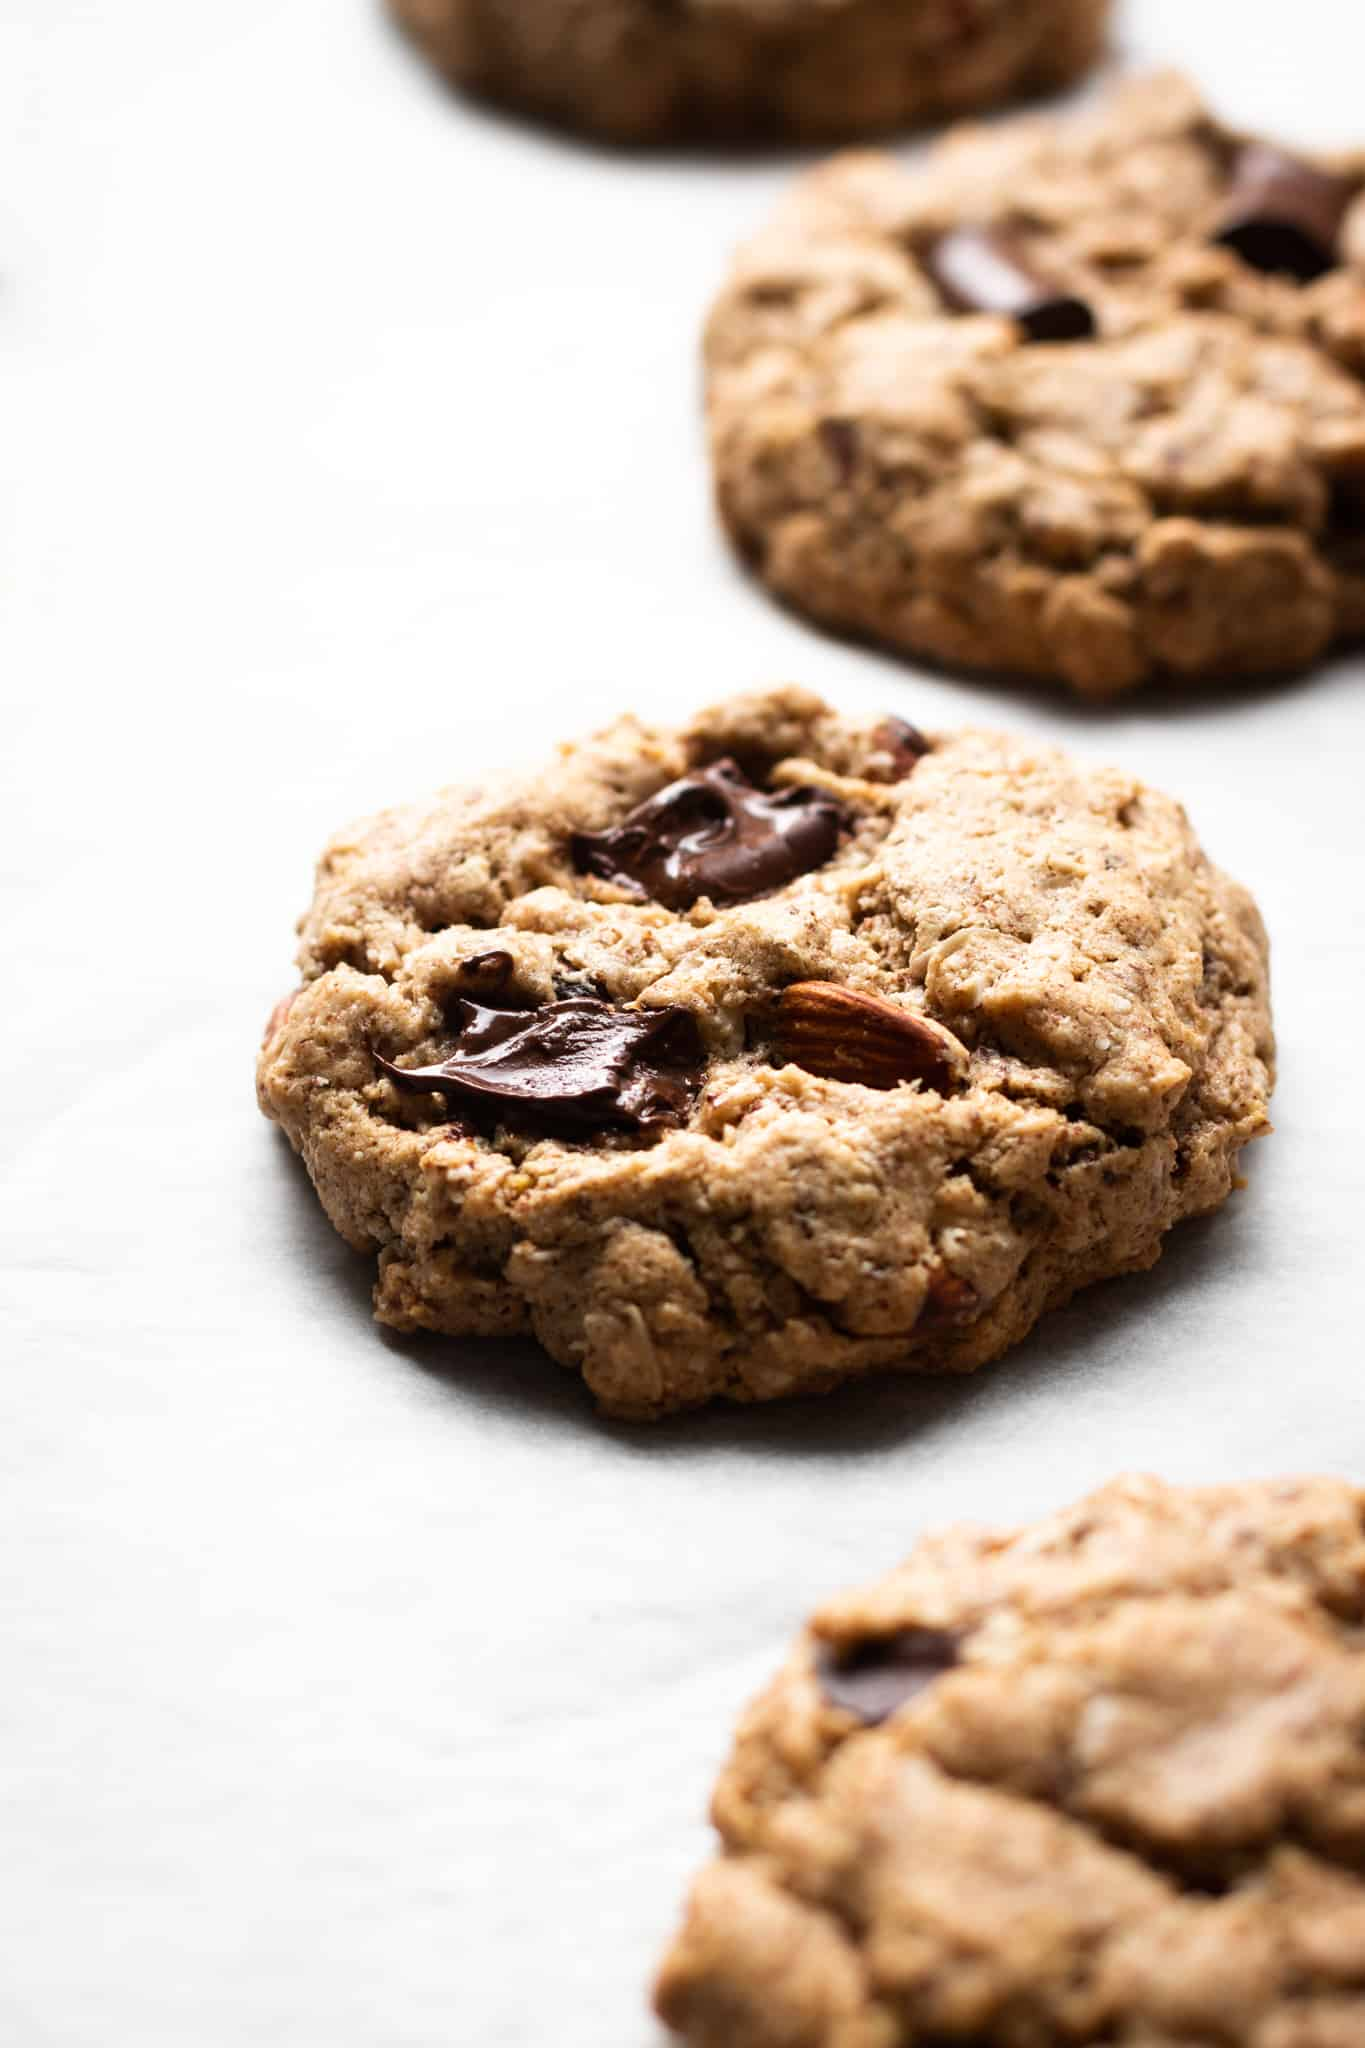 almond breakfast cookies from the side